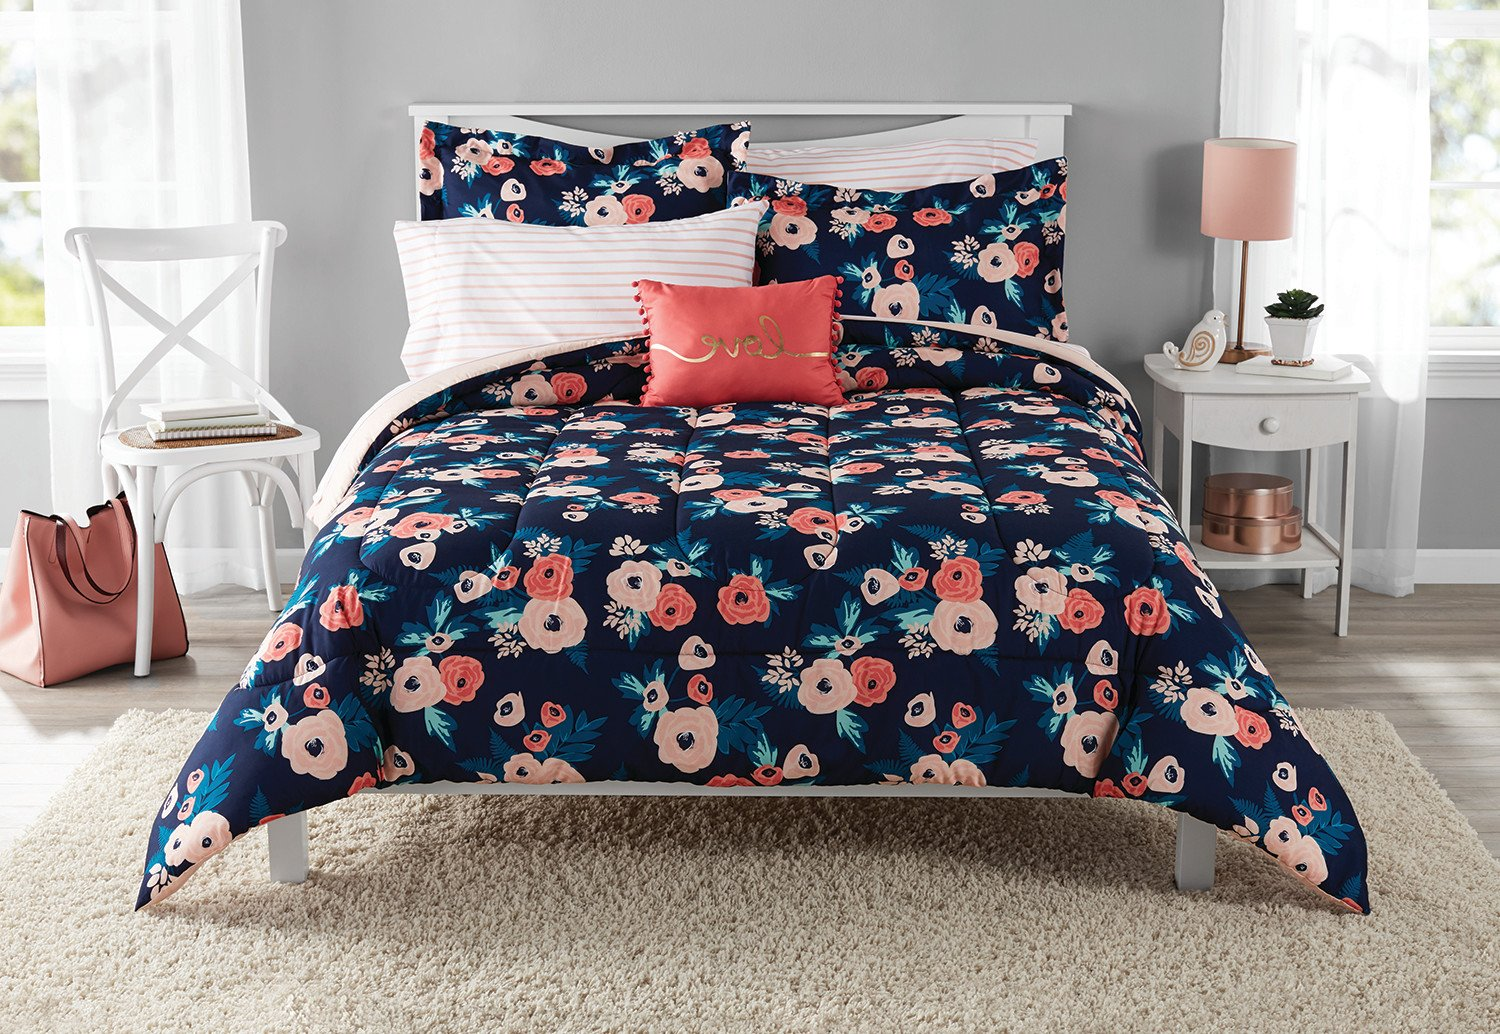 NA 8 Piece Girls Navy Blue Rose Bouquet Comforter With Sheet Full Set, Coral Pink Whimsical Floral Blooms Pattern, Reversible Blush Pink Stripe Kids Bedding Garden Nature Themed Teen, Microfiber